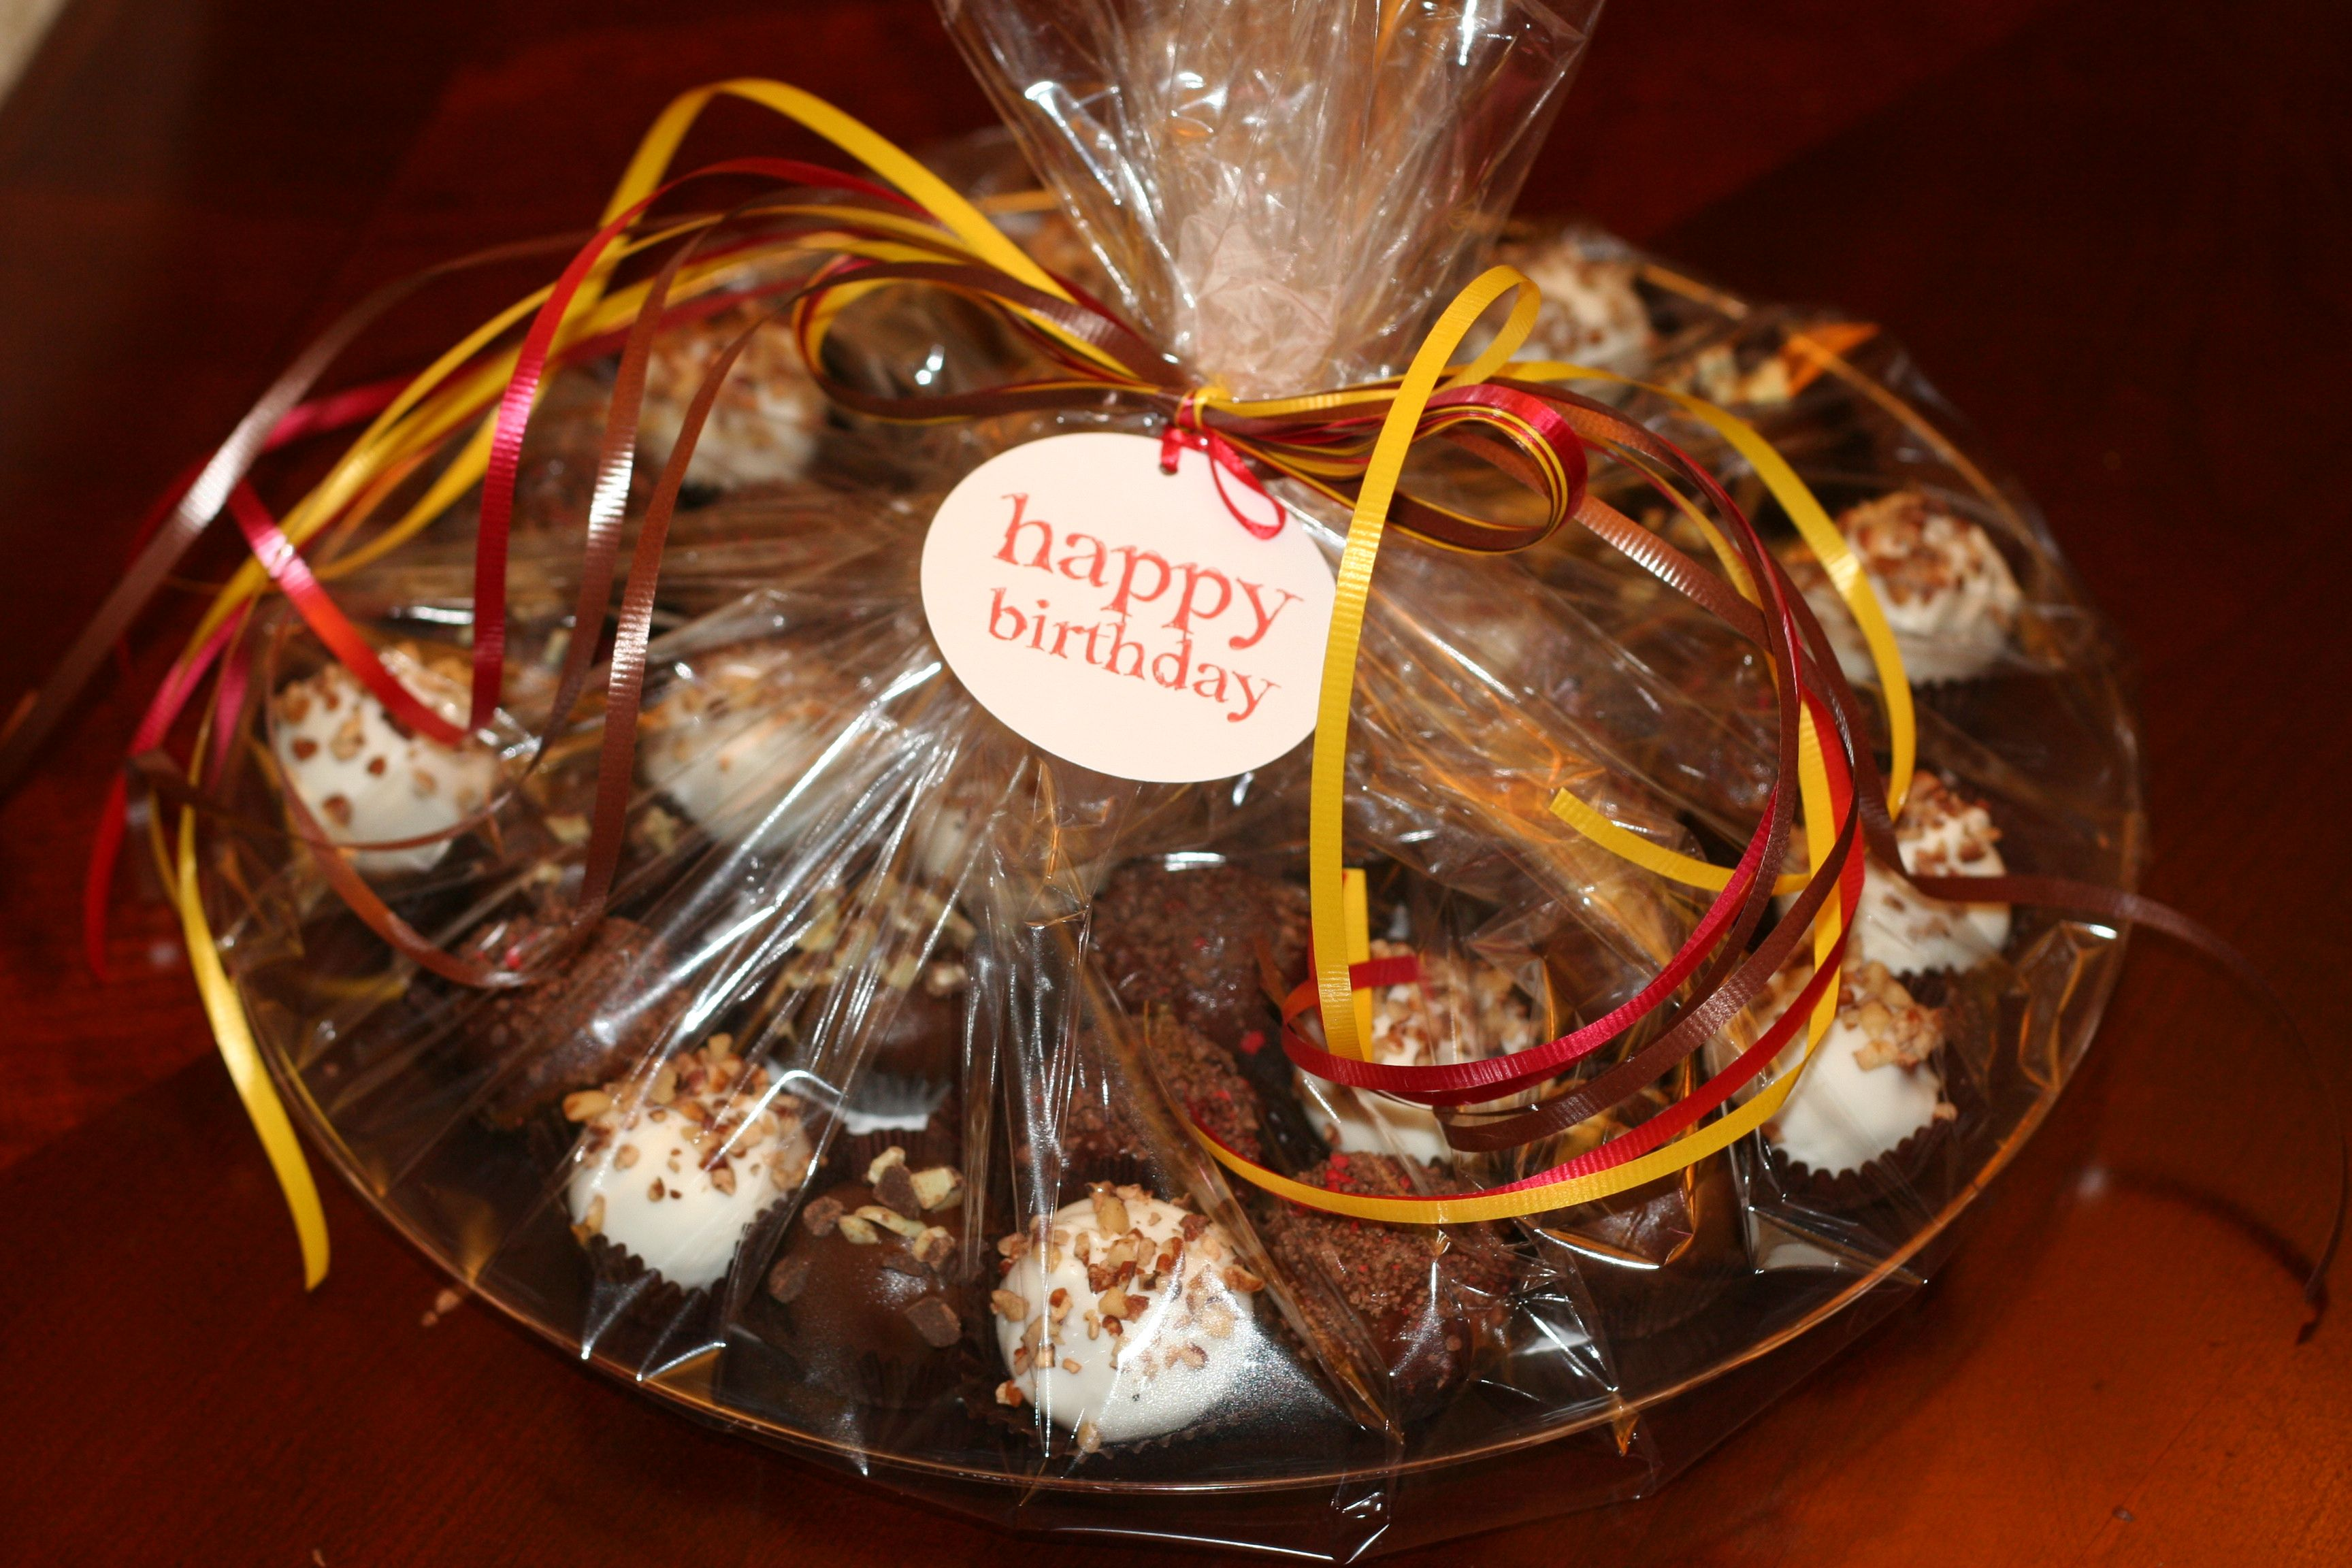 Occassion tags are available to accent party platters, cake ball boxes by the dozen or cake pop baskets. Available in different colors for Happy Birthday, Get Well Soon, Just Bacuase or Thank You!